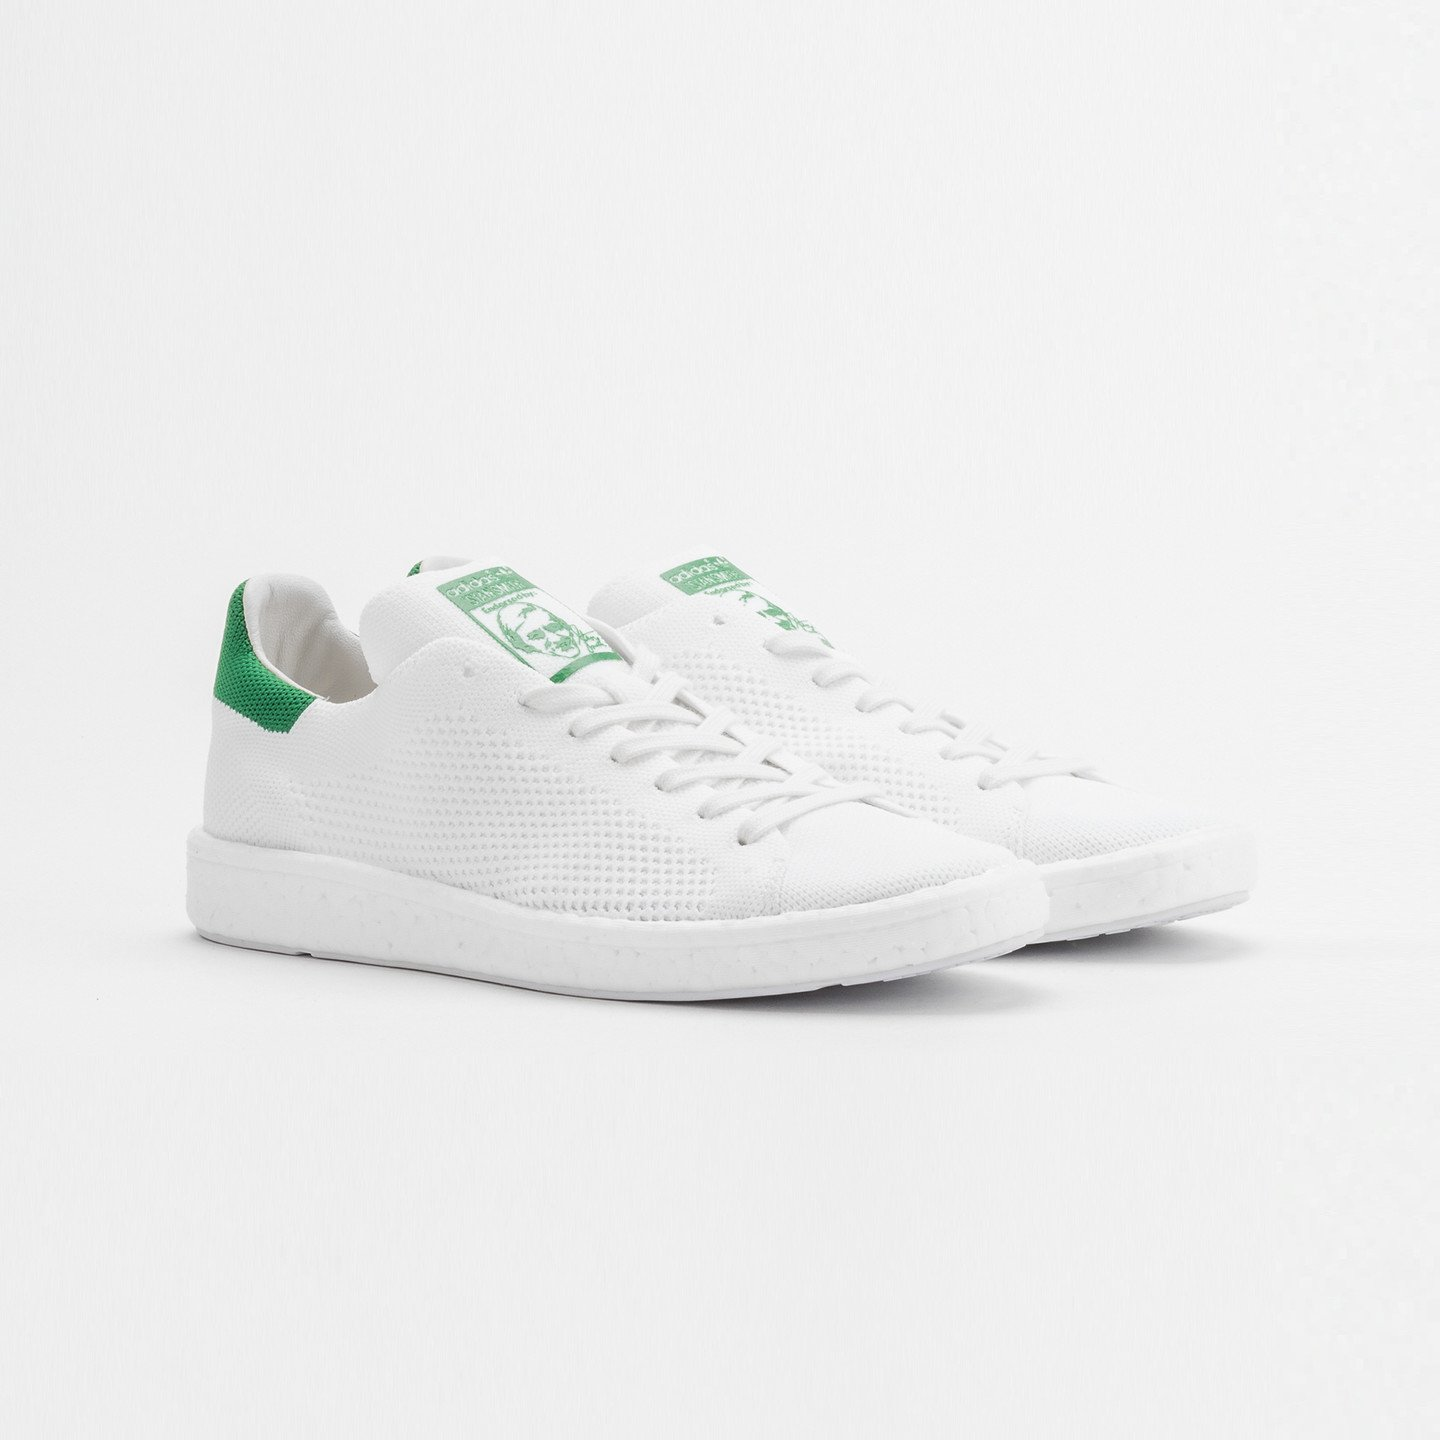 Adidas Stan Smith Boost PK Ftwr White / Green BB0013